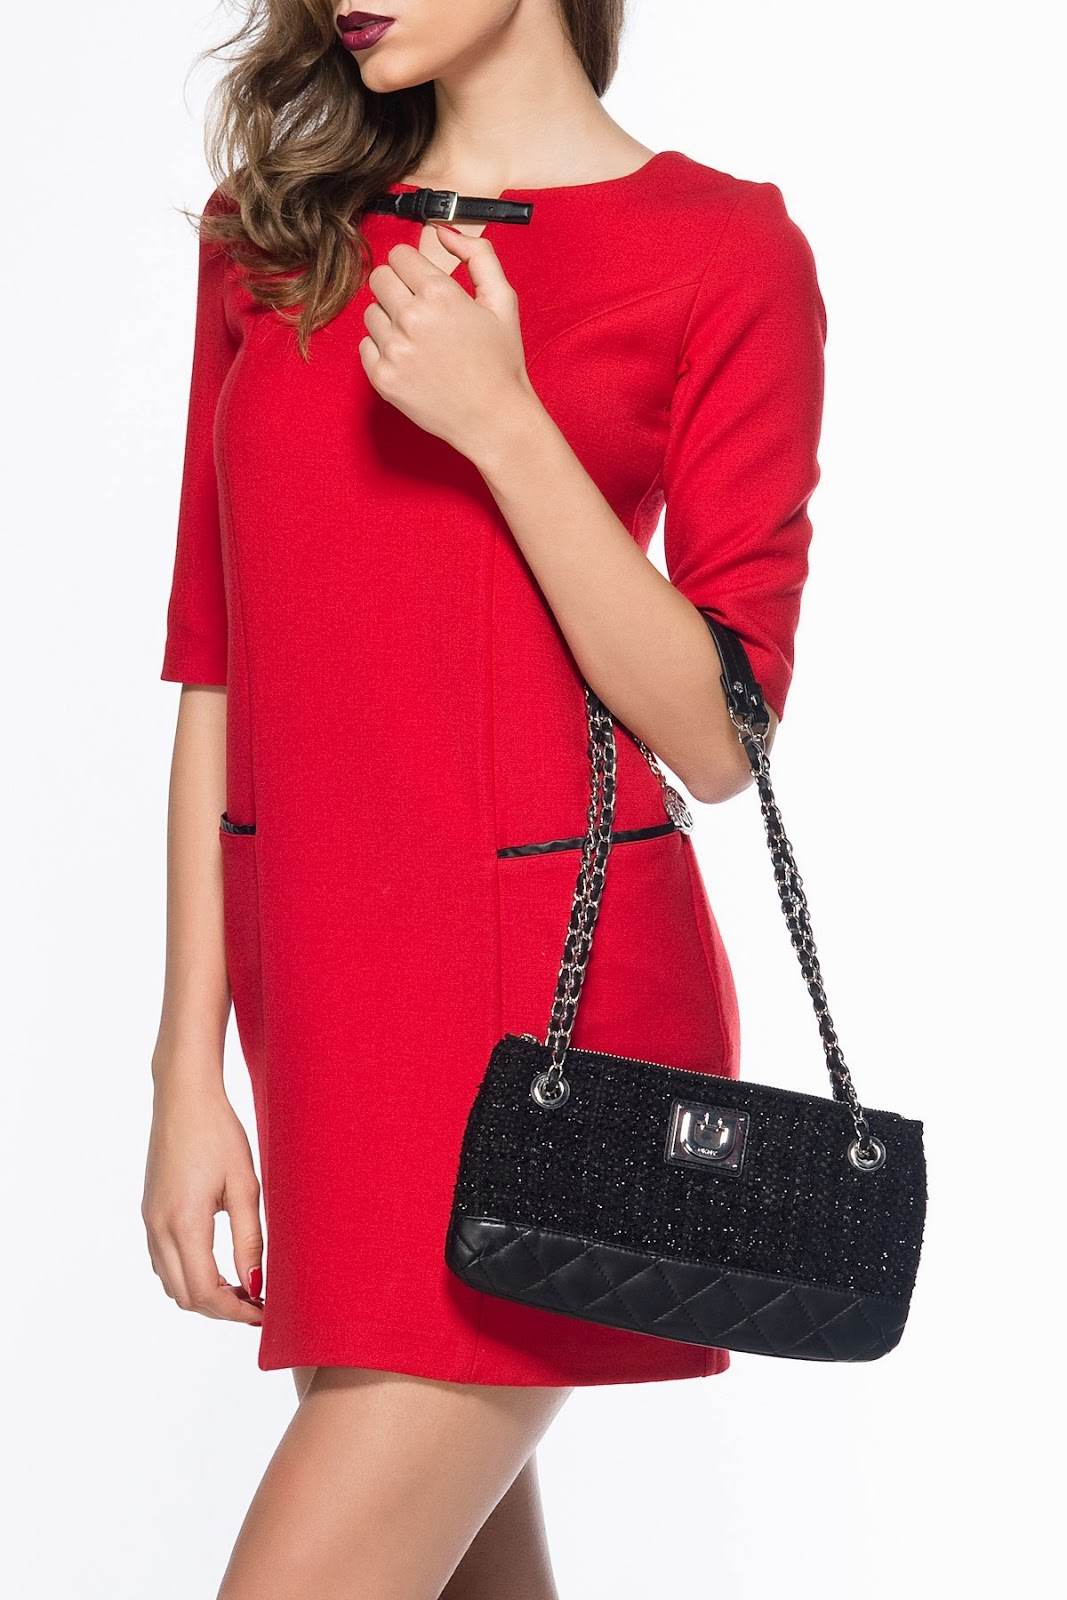 sembrono dkny ladies bag models models 2014 summer